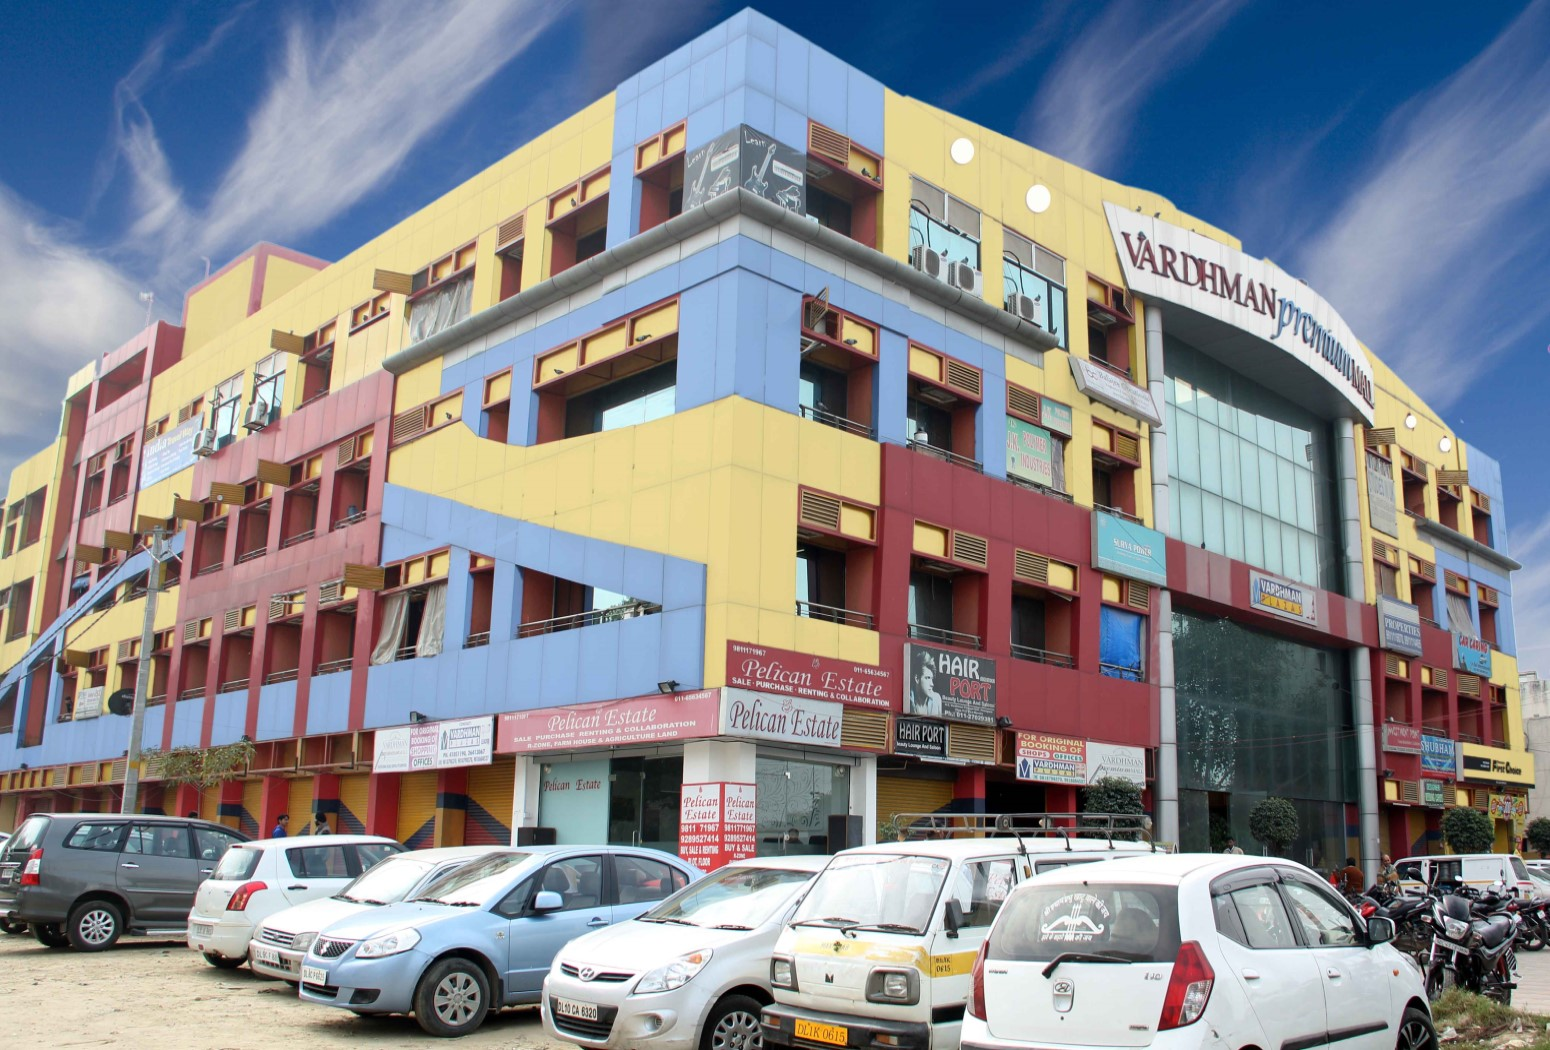 Commercial property for sale In Sector 153, Noida